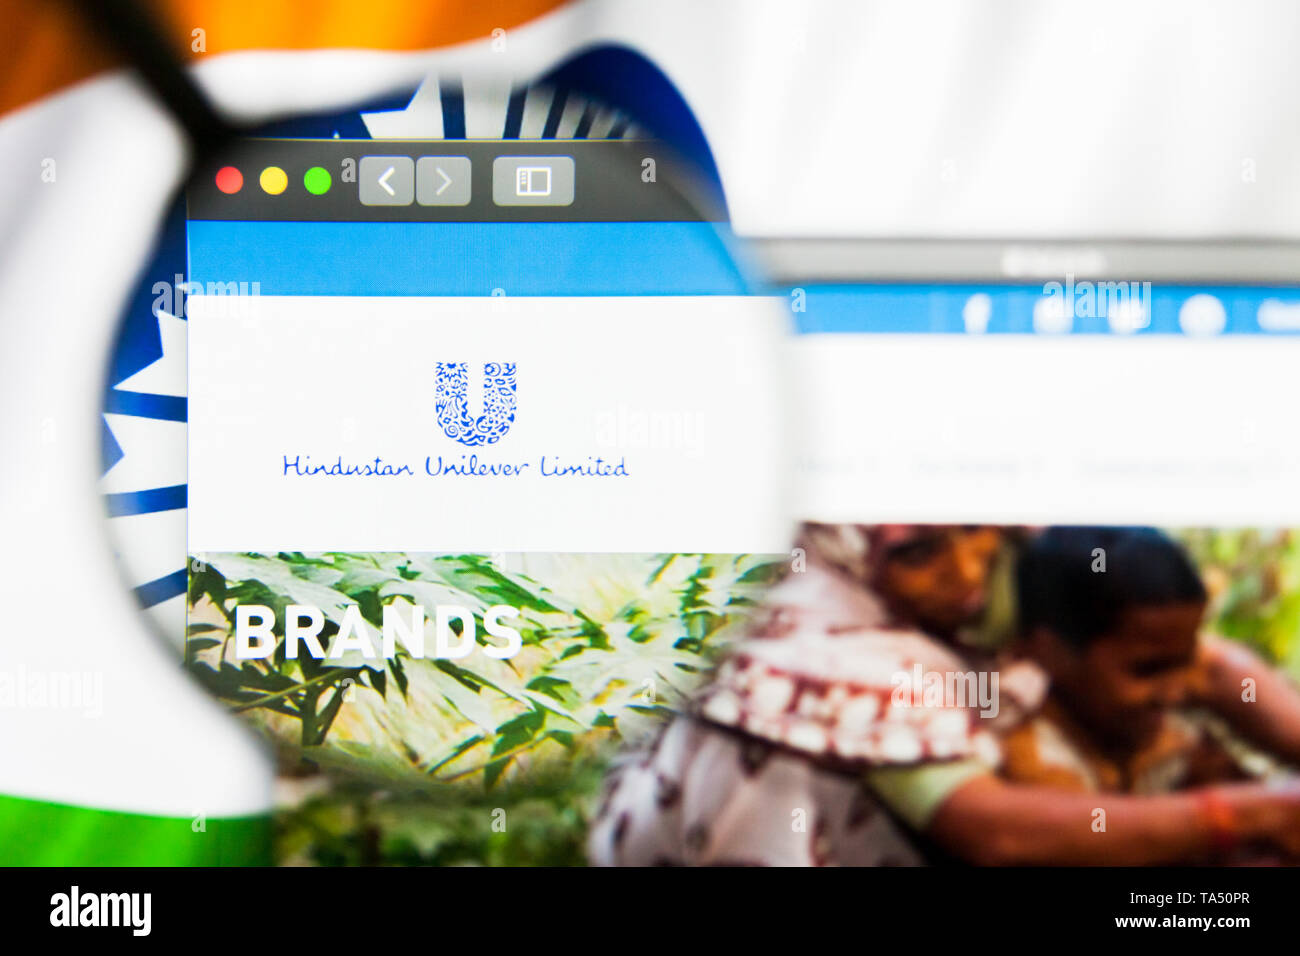 New York, New York State, USA - 21 May 2019: Illustrative Editorial of indian company Hindustan Unilever website homepage. Hindustan Unilever logo vis - Stock Image